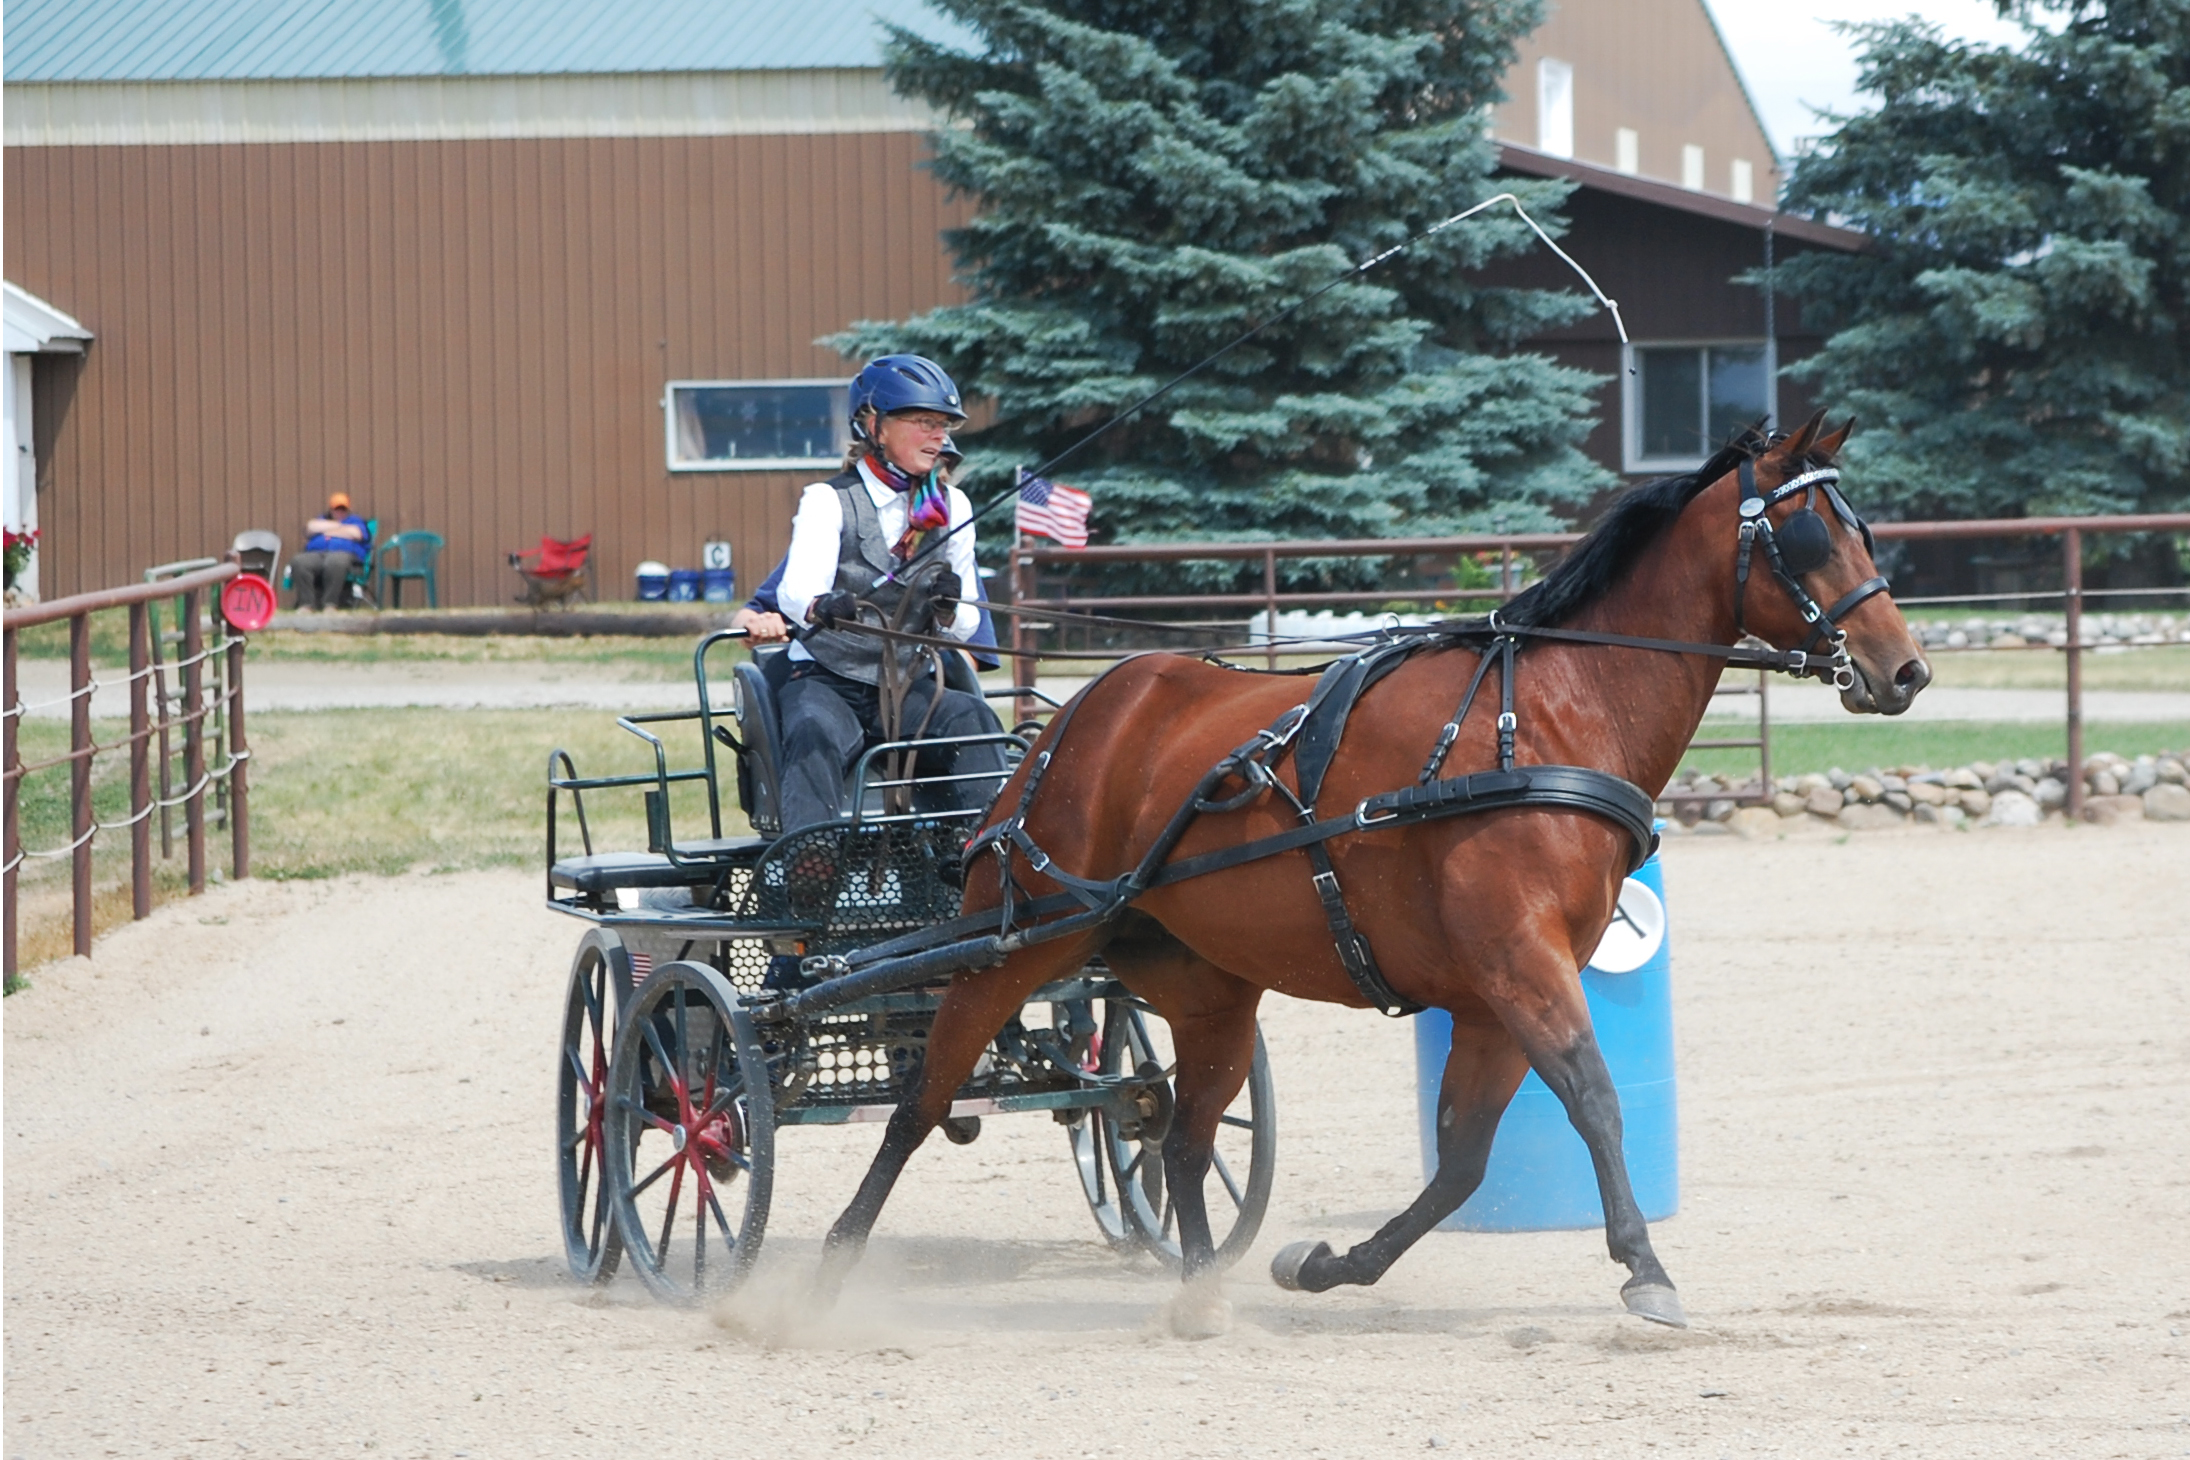 Fraser School of Driving – Teaching people how to drive horses to